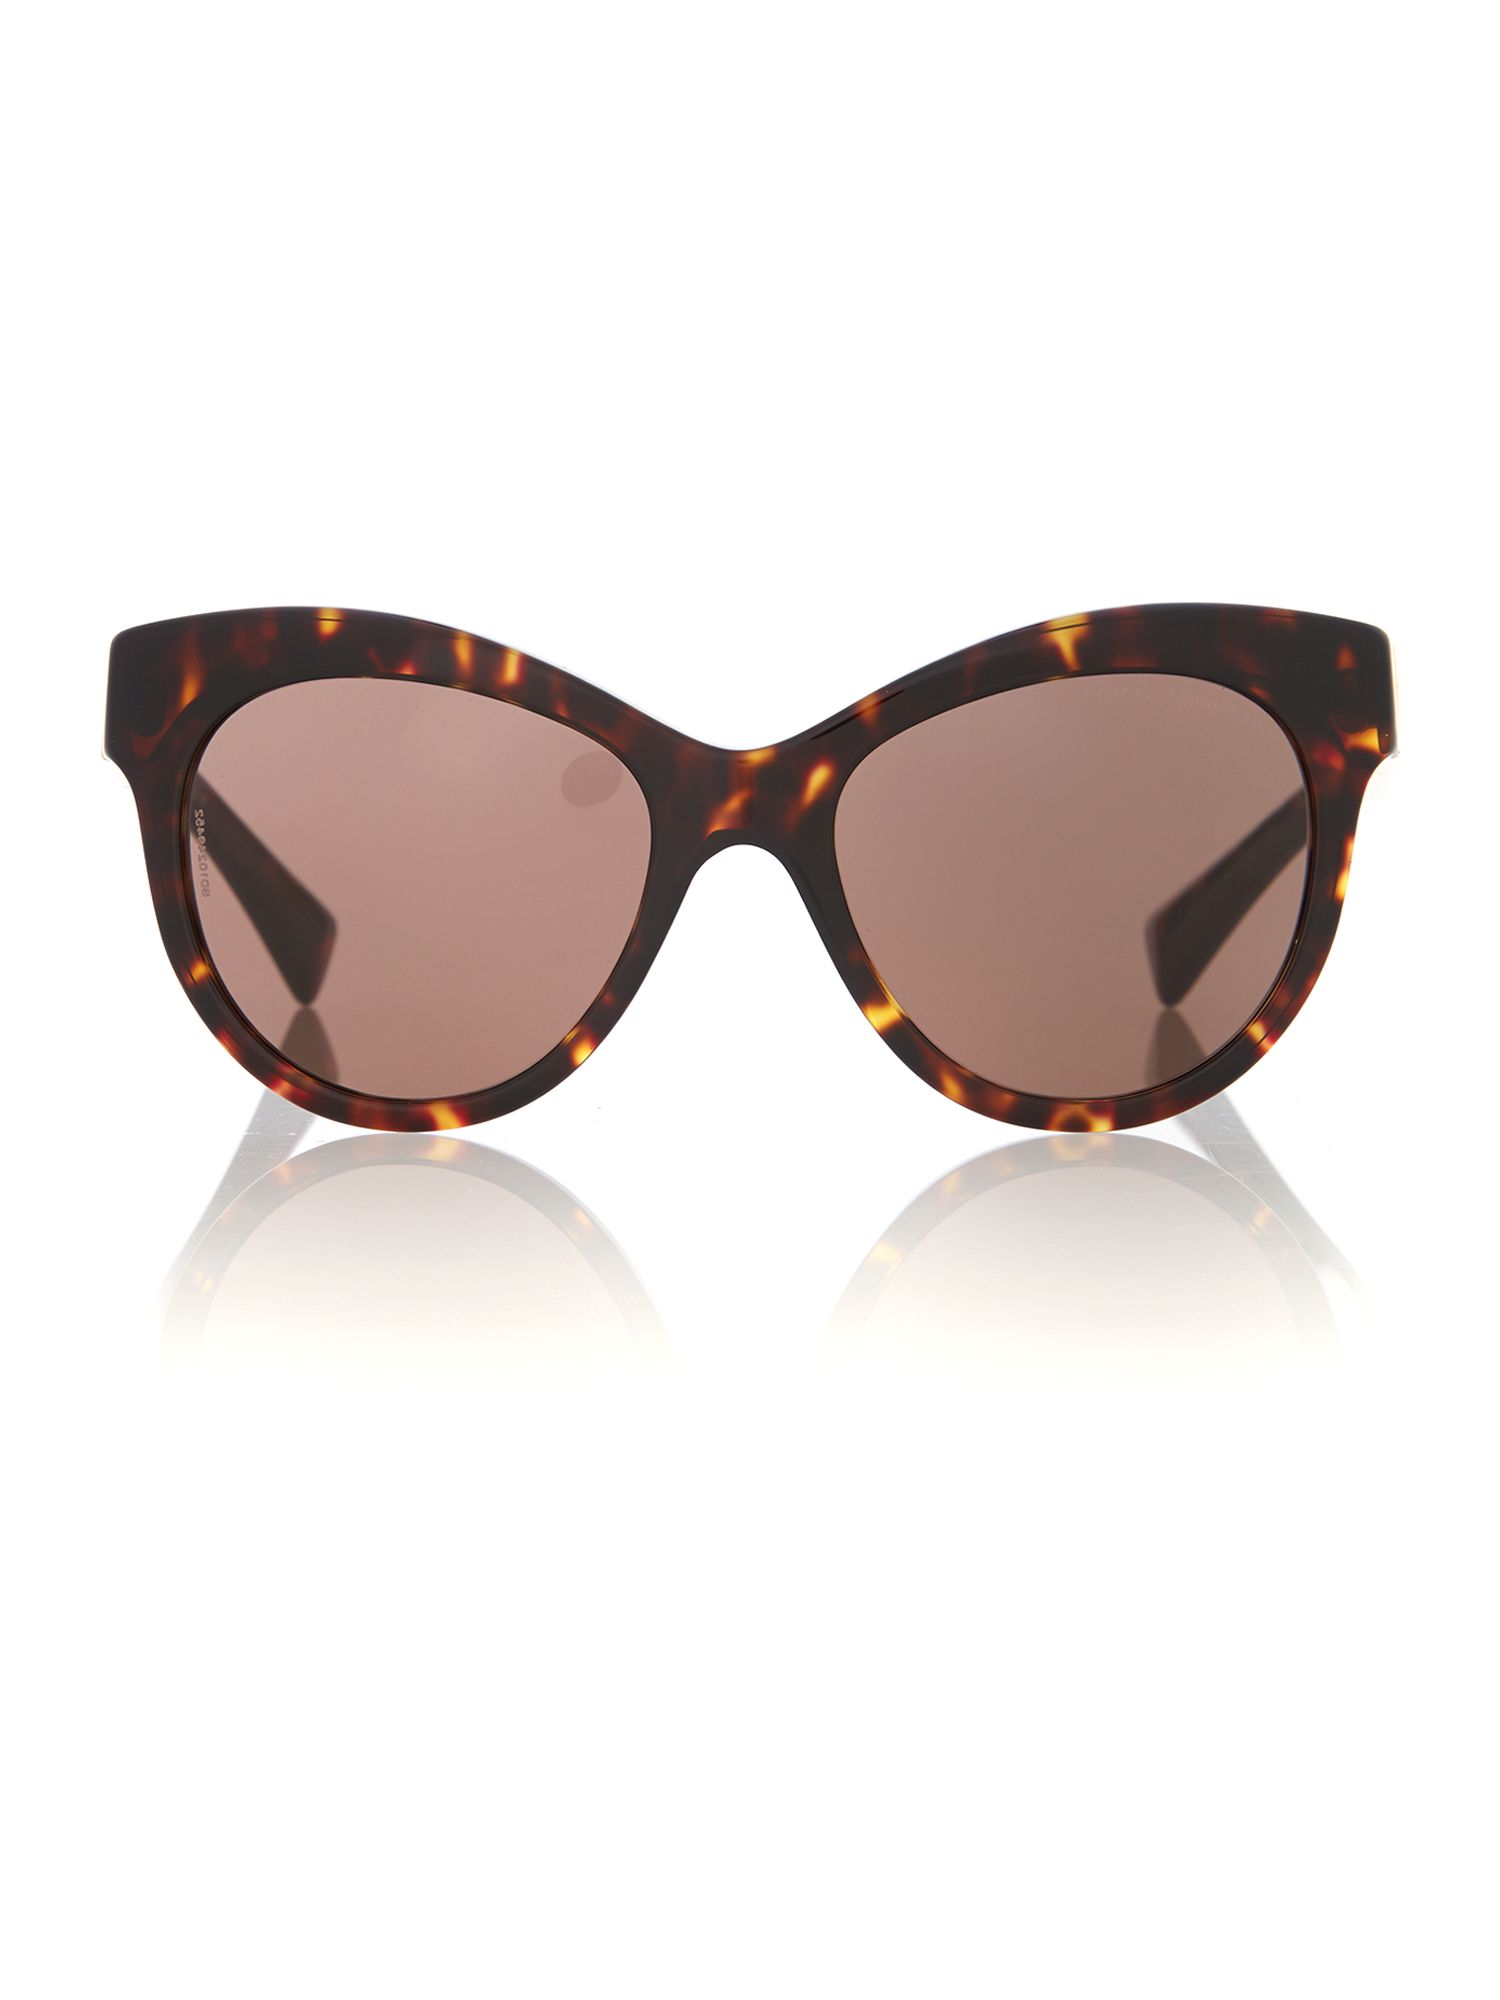 Women brown round sunglasses